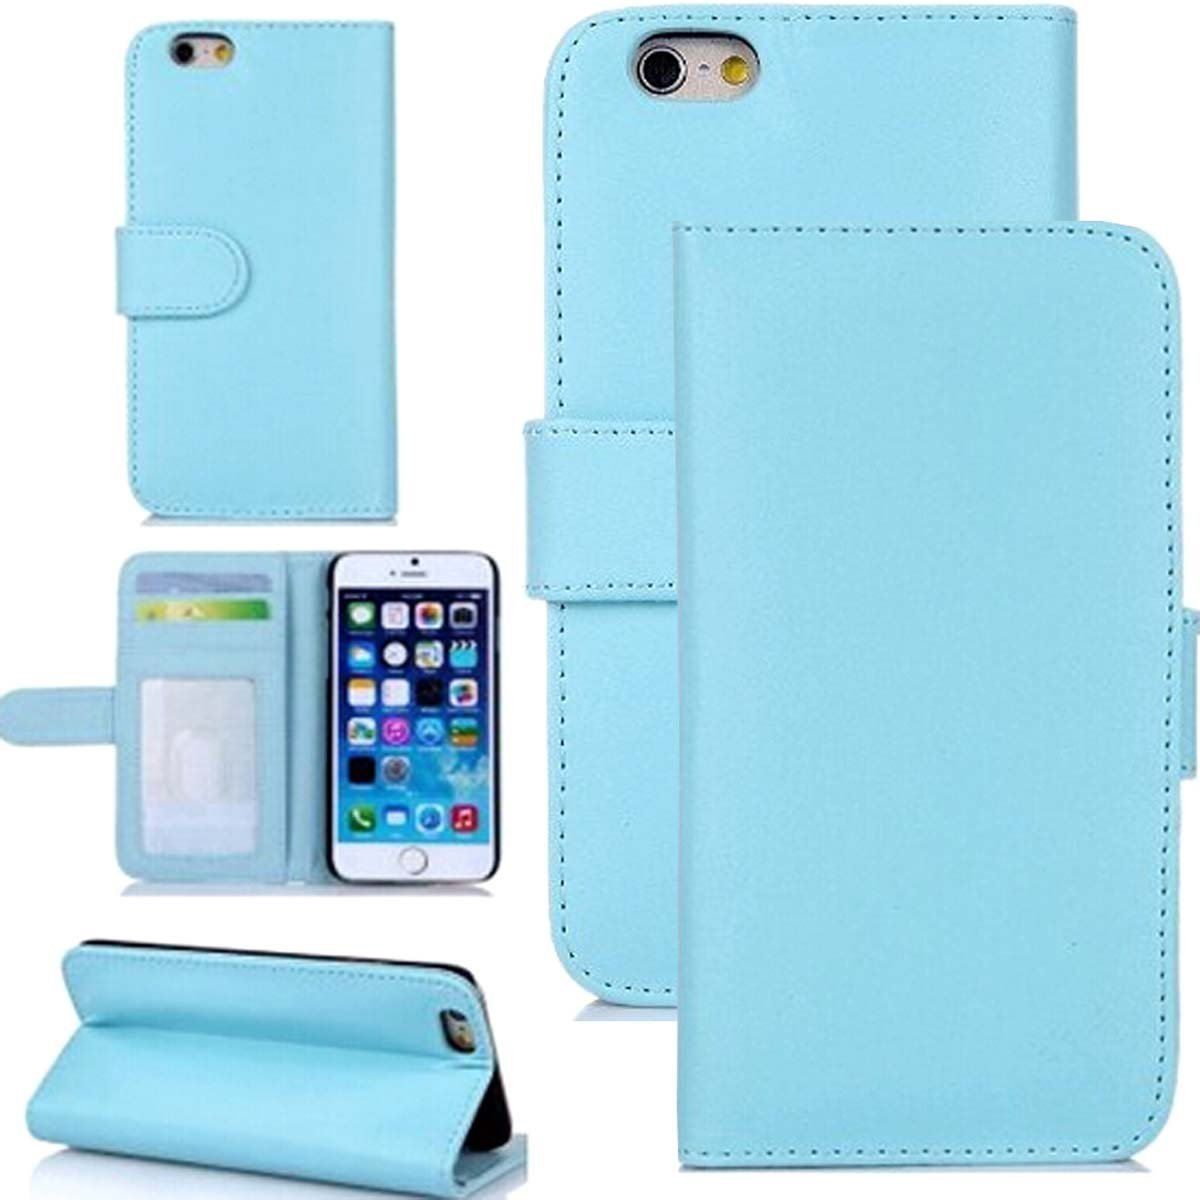 """iPhone 6S Cover,iPhone 6S Leather Case,iPhone 6S Case Wallet,Candywe [Sky Blue][Wallet] Flip Case Cover For iPhone 6S 4.7"""""""